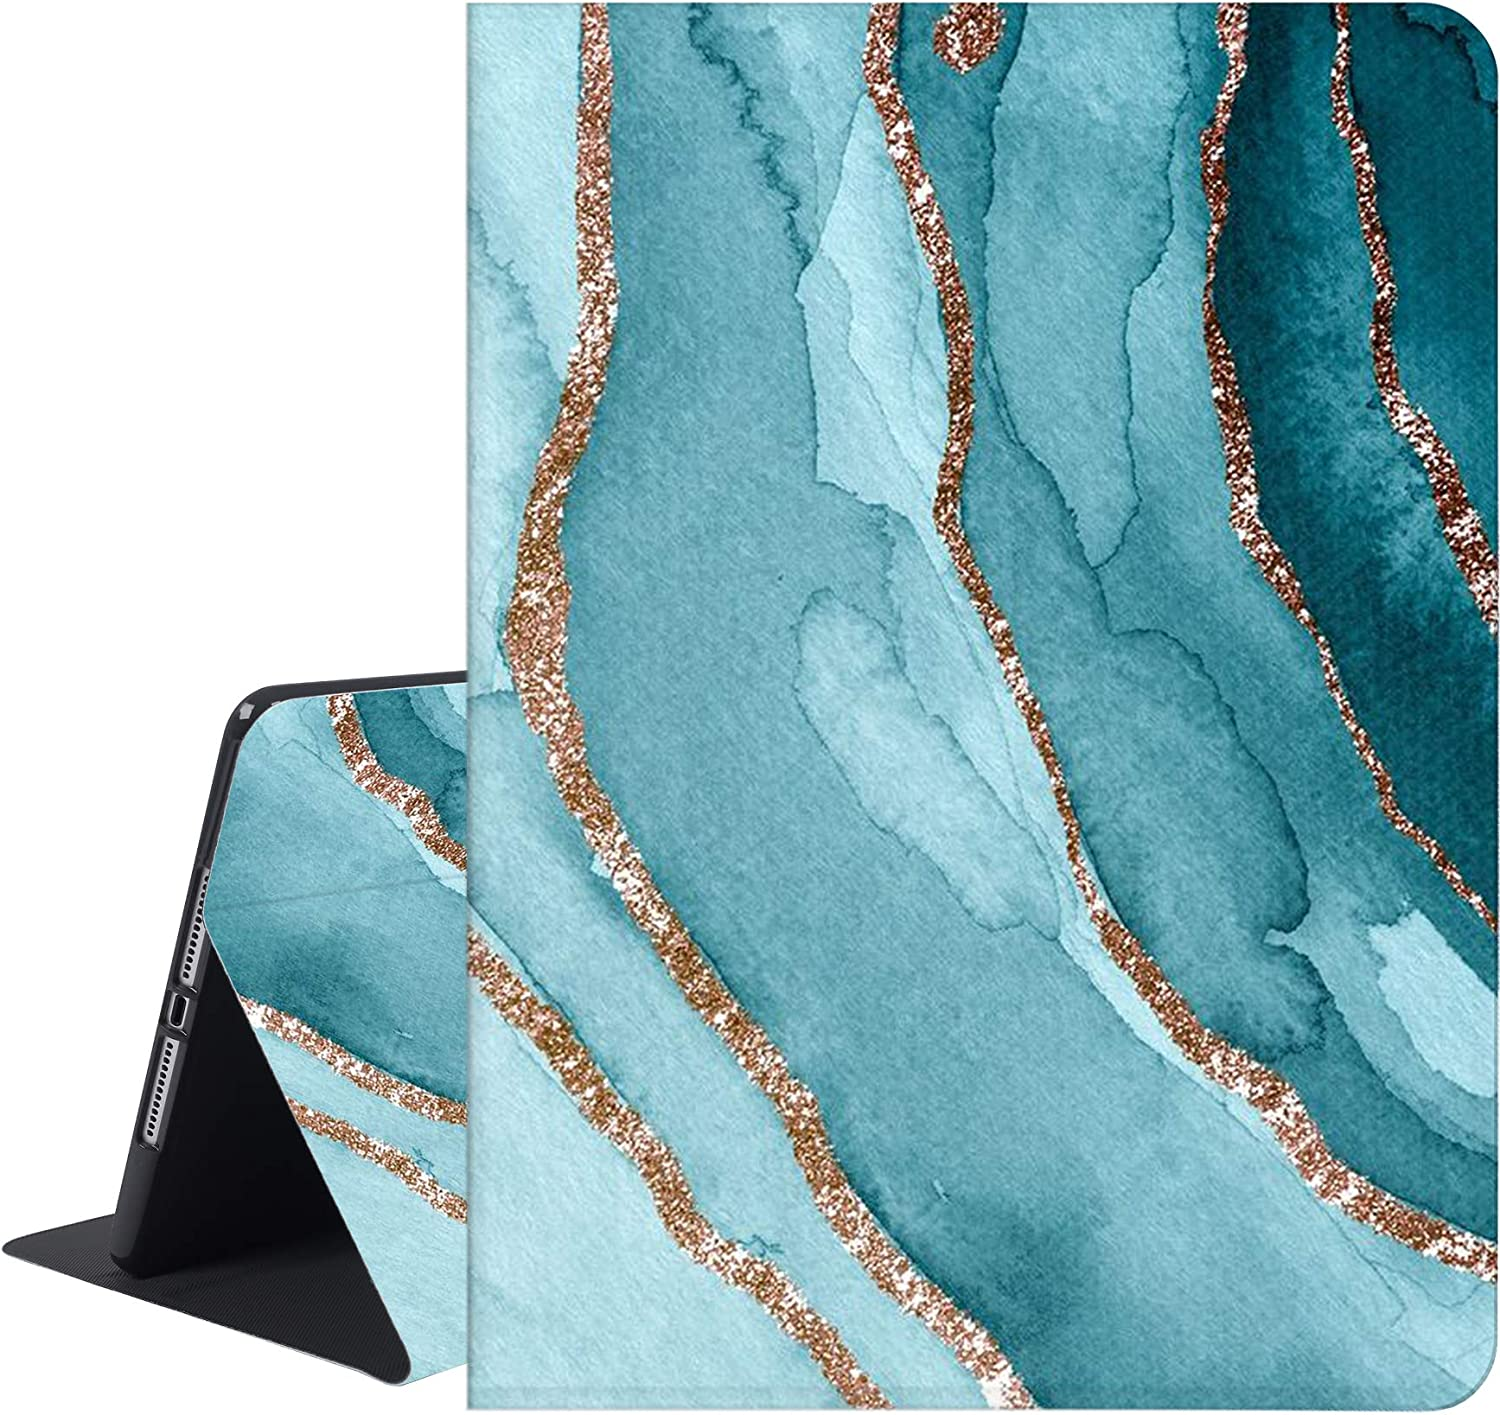 RicHyun Marble iPad 9.7 Case 2017/2018, iPad Air 1/2 Case, Protective Folio Leather Case with Soft Rubber Back Cover, Adjustable Stand Smart Case for Apple iPad 6th 5th Generation, Blue-Gold Marble